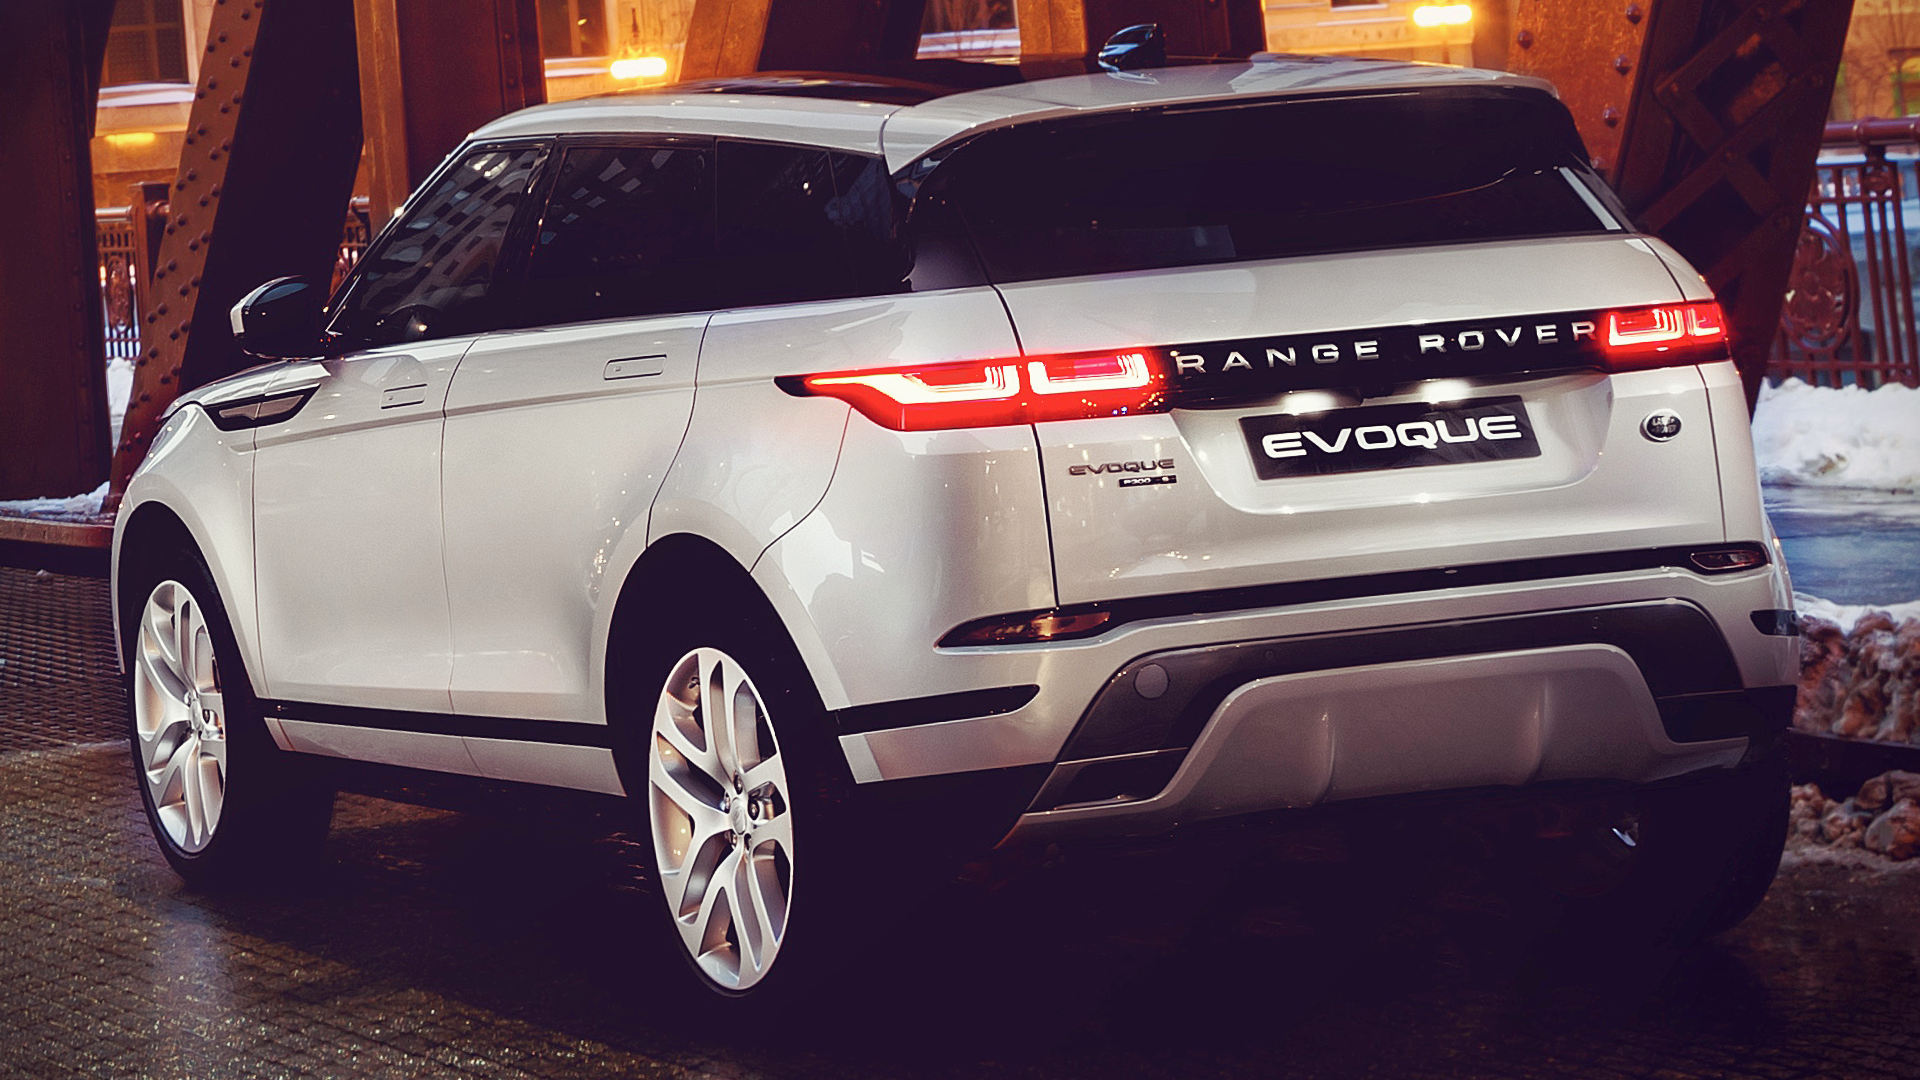 2020 Range Rover Evoque White Wallpaper